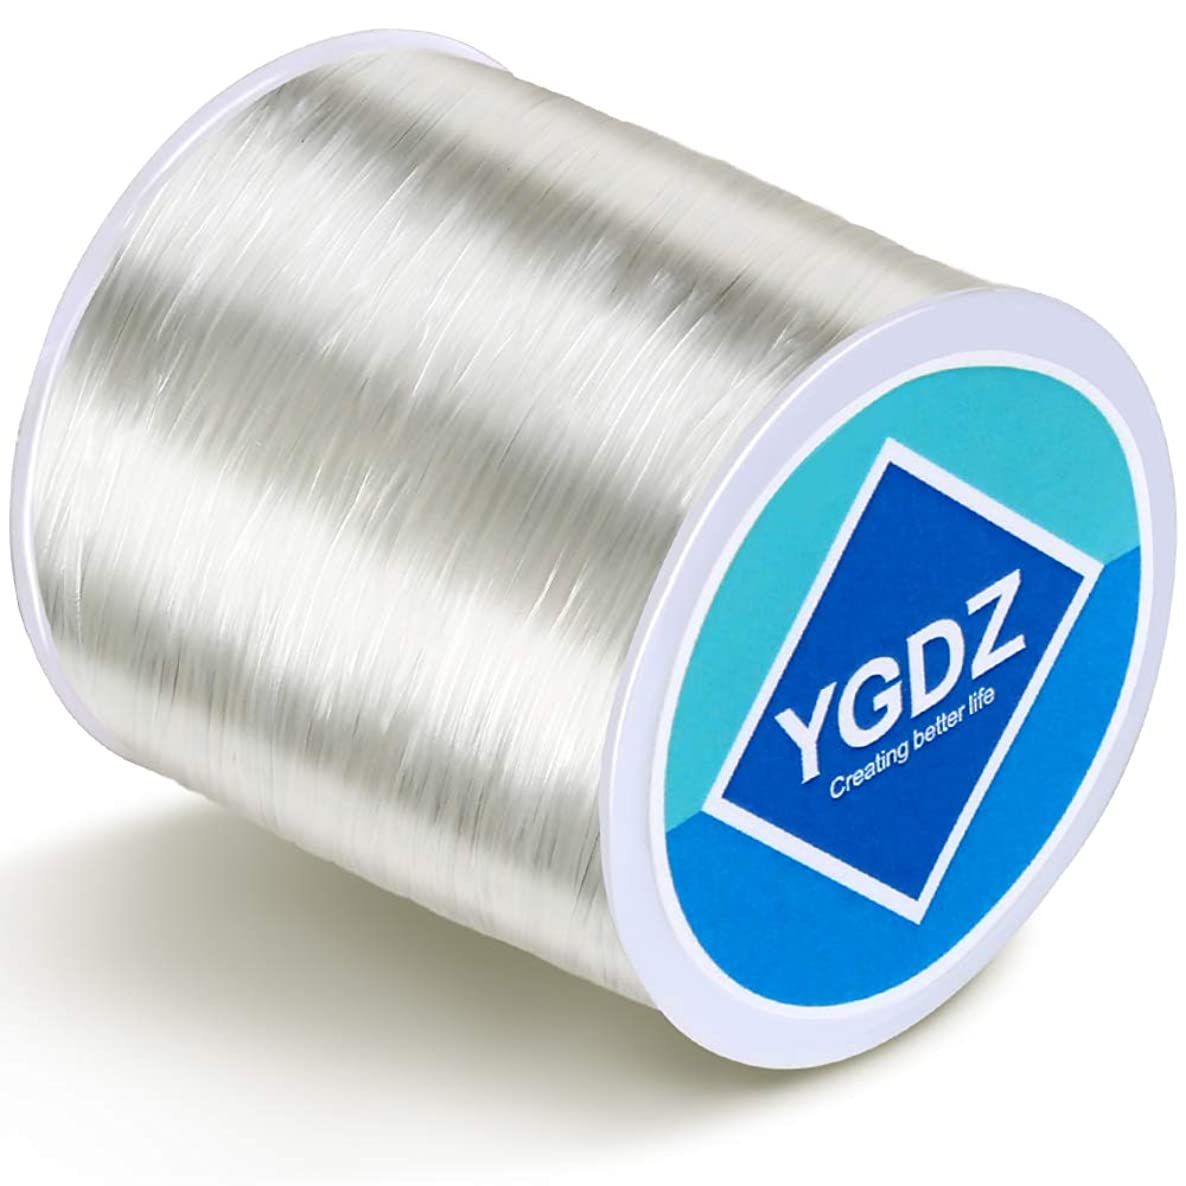 0.8mm Bracelet String, YGDZ Clear Elastic Bead Cord Stretchy Crystal Thread Bracelet String for Jewelry Making Bracelet Beading Crafting, 1 Roll 100m (0.8mm)